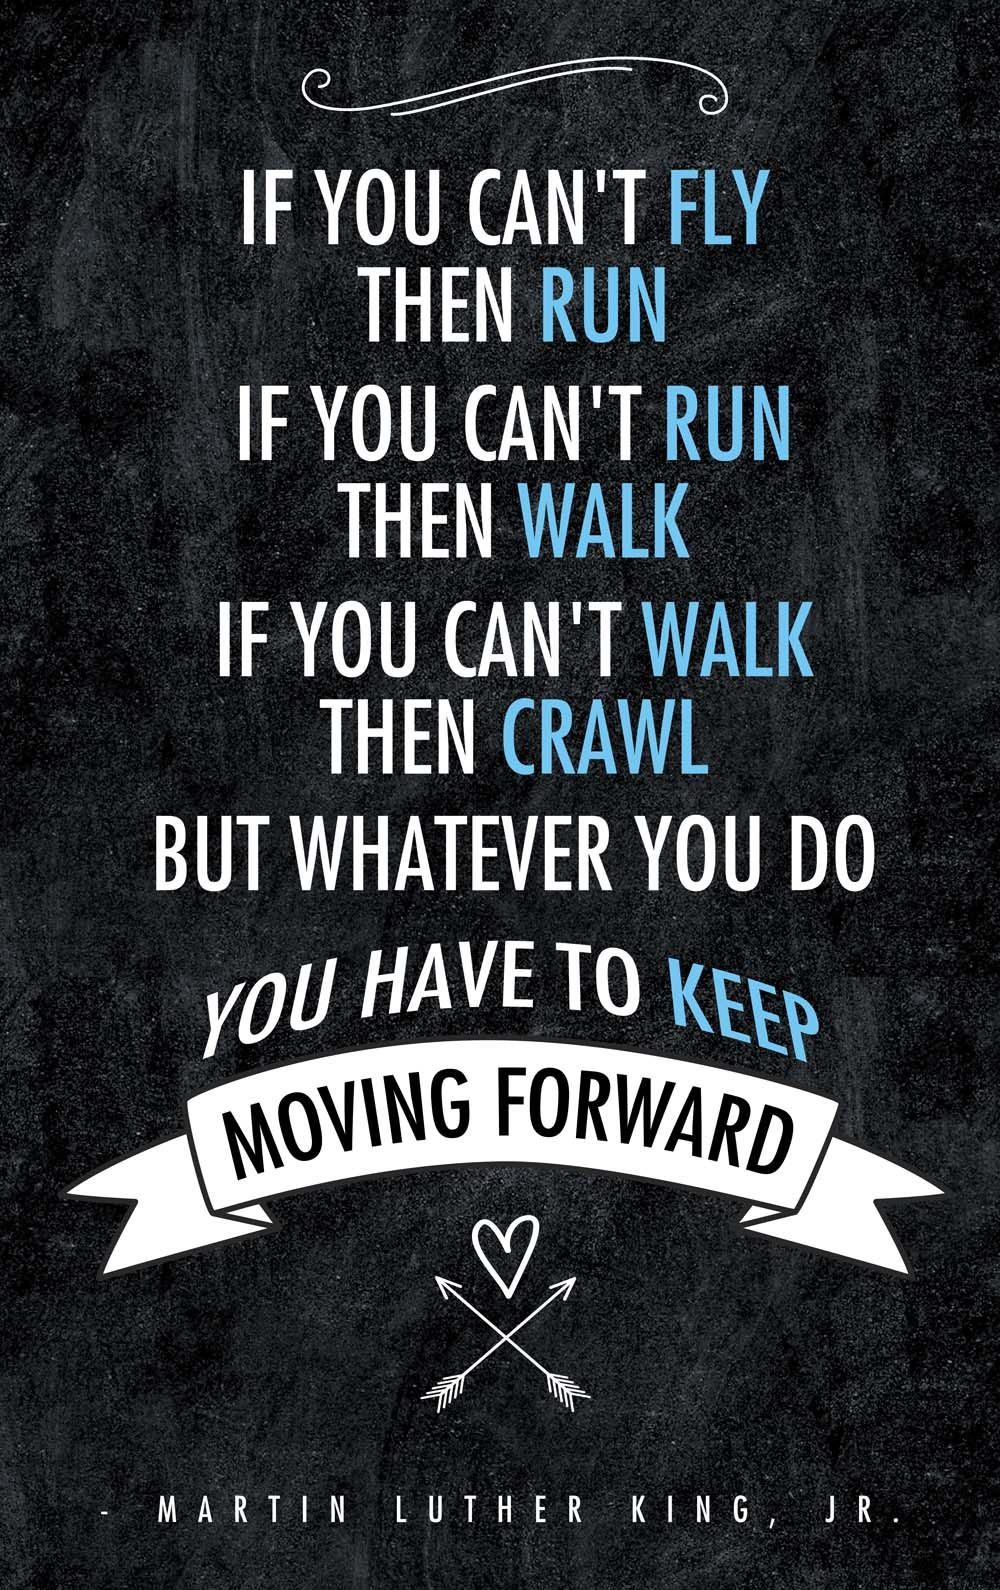 Move Forward Quotes Cool Keep Moving Forward #quote #martinlutherking  Inspiration Quotes